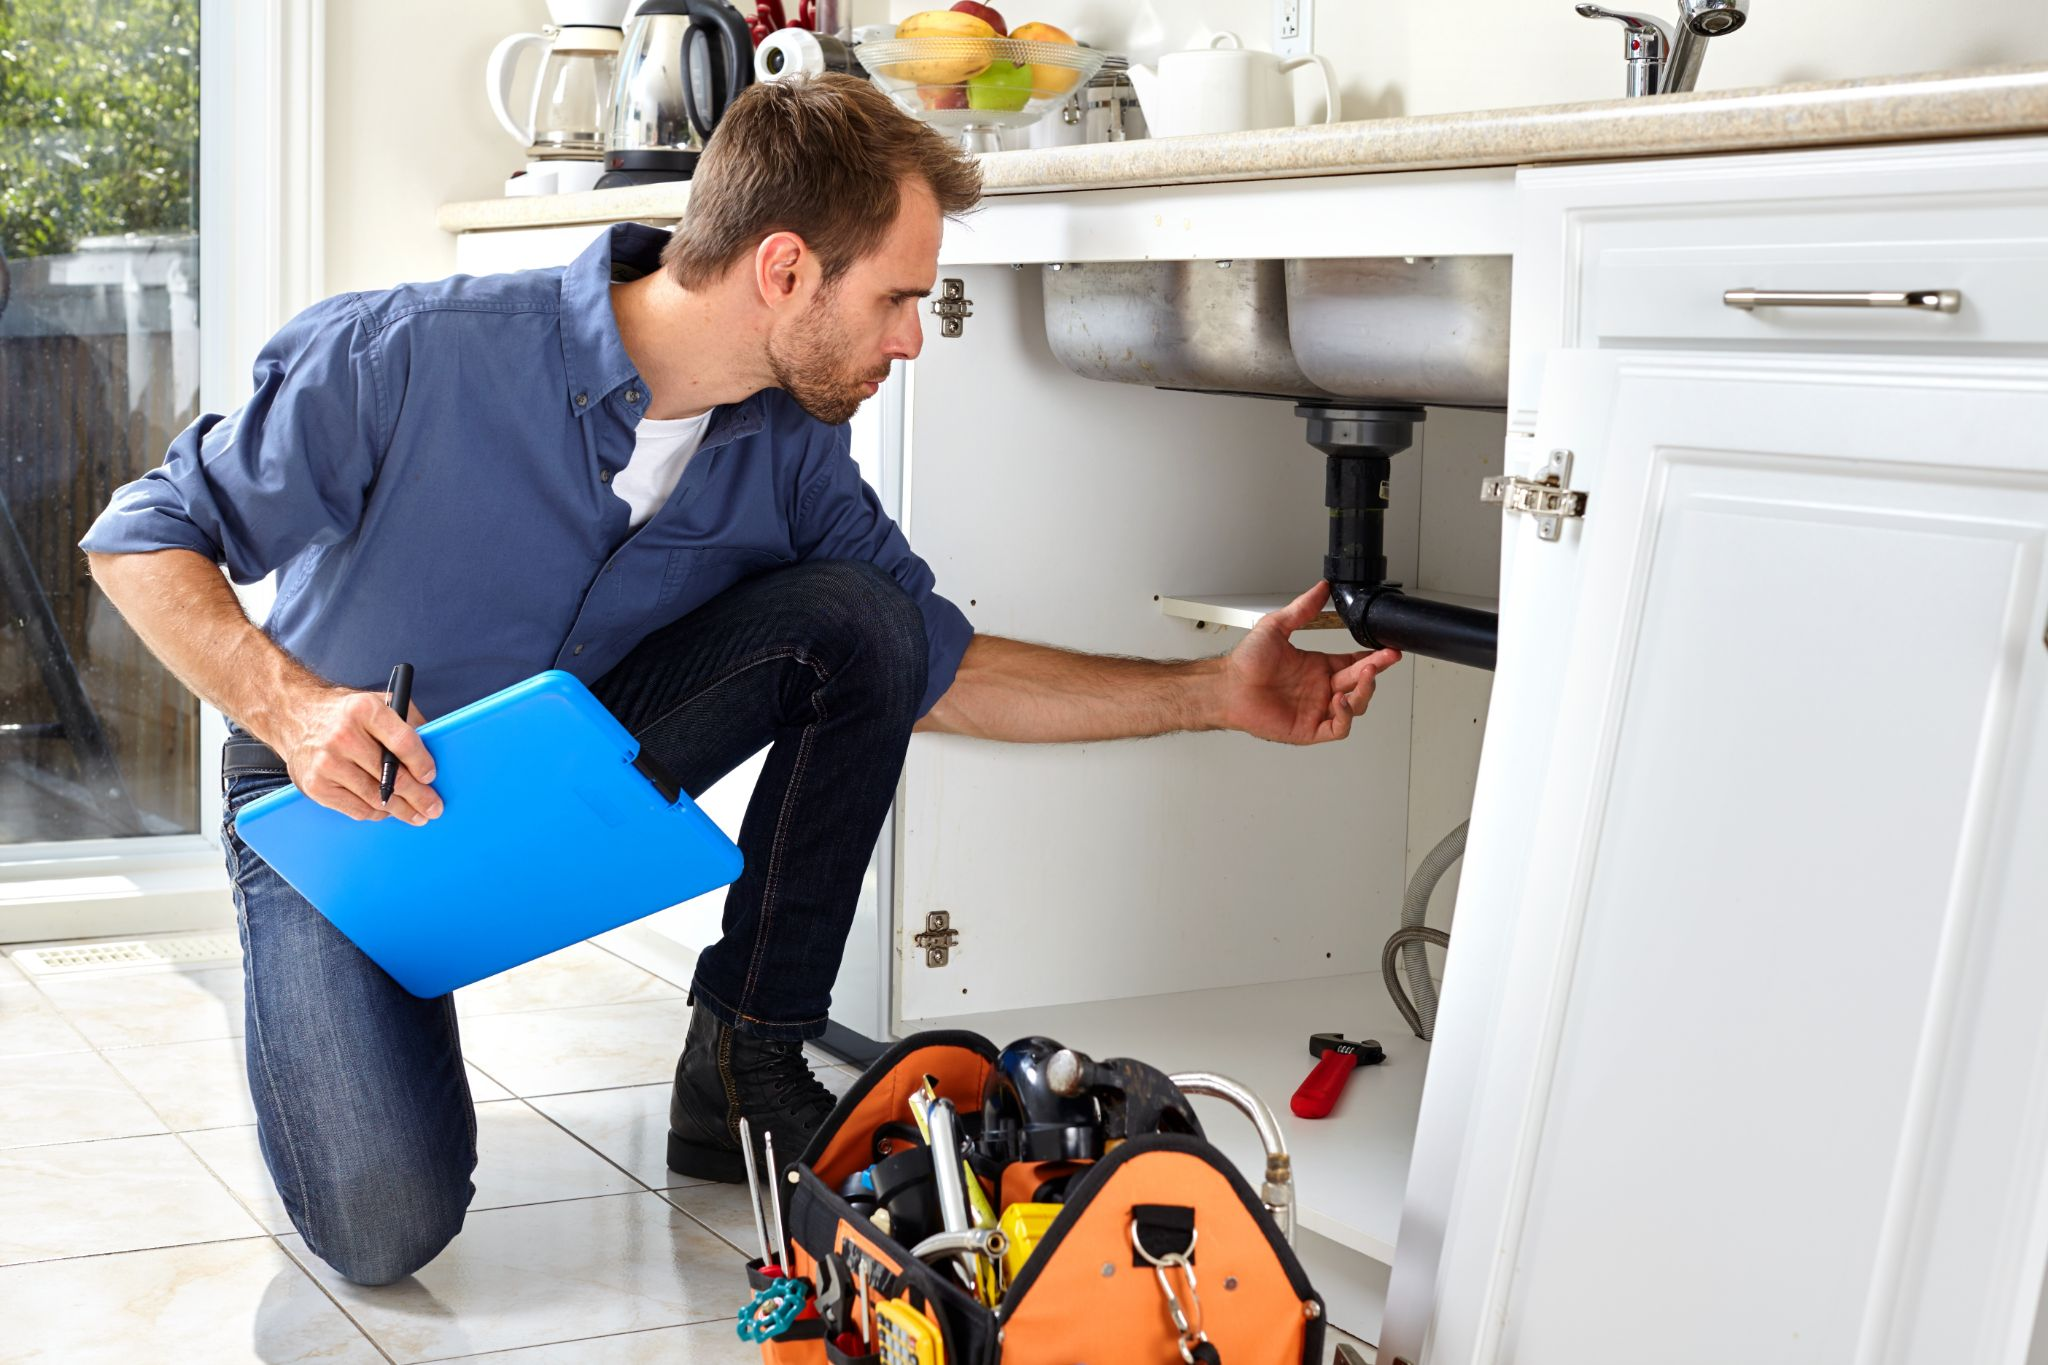 Structural engineer inspects plumbing during home inspection.